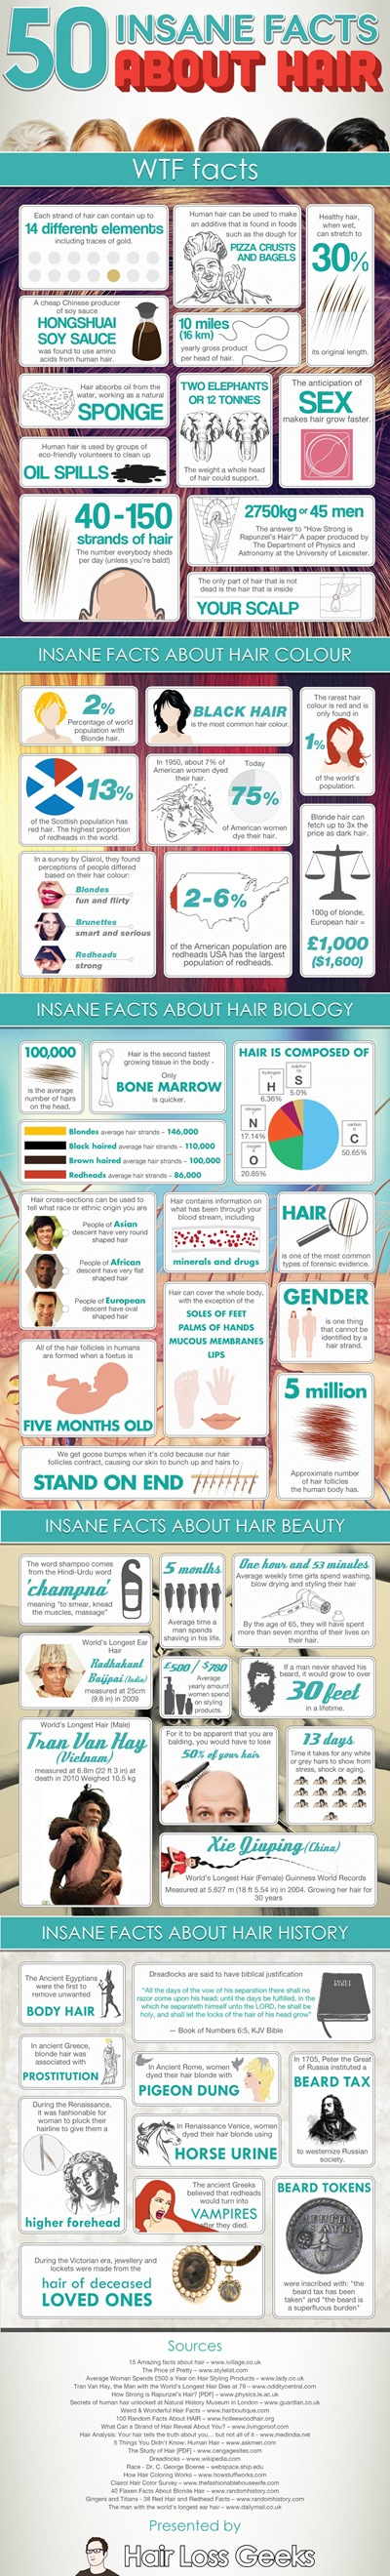 50-insane-facts-about-hair-infographic_514869d497fac